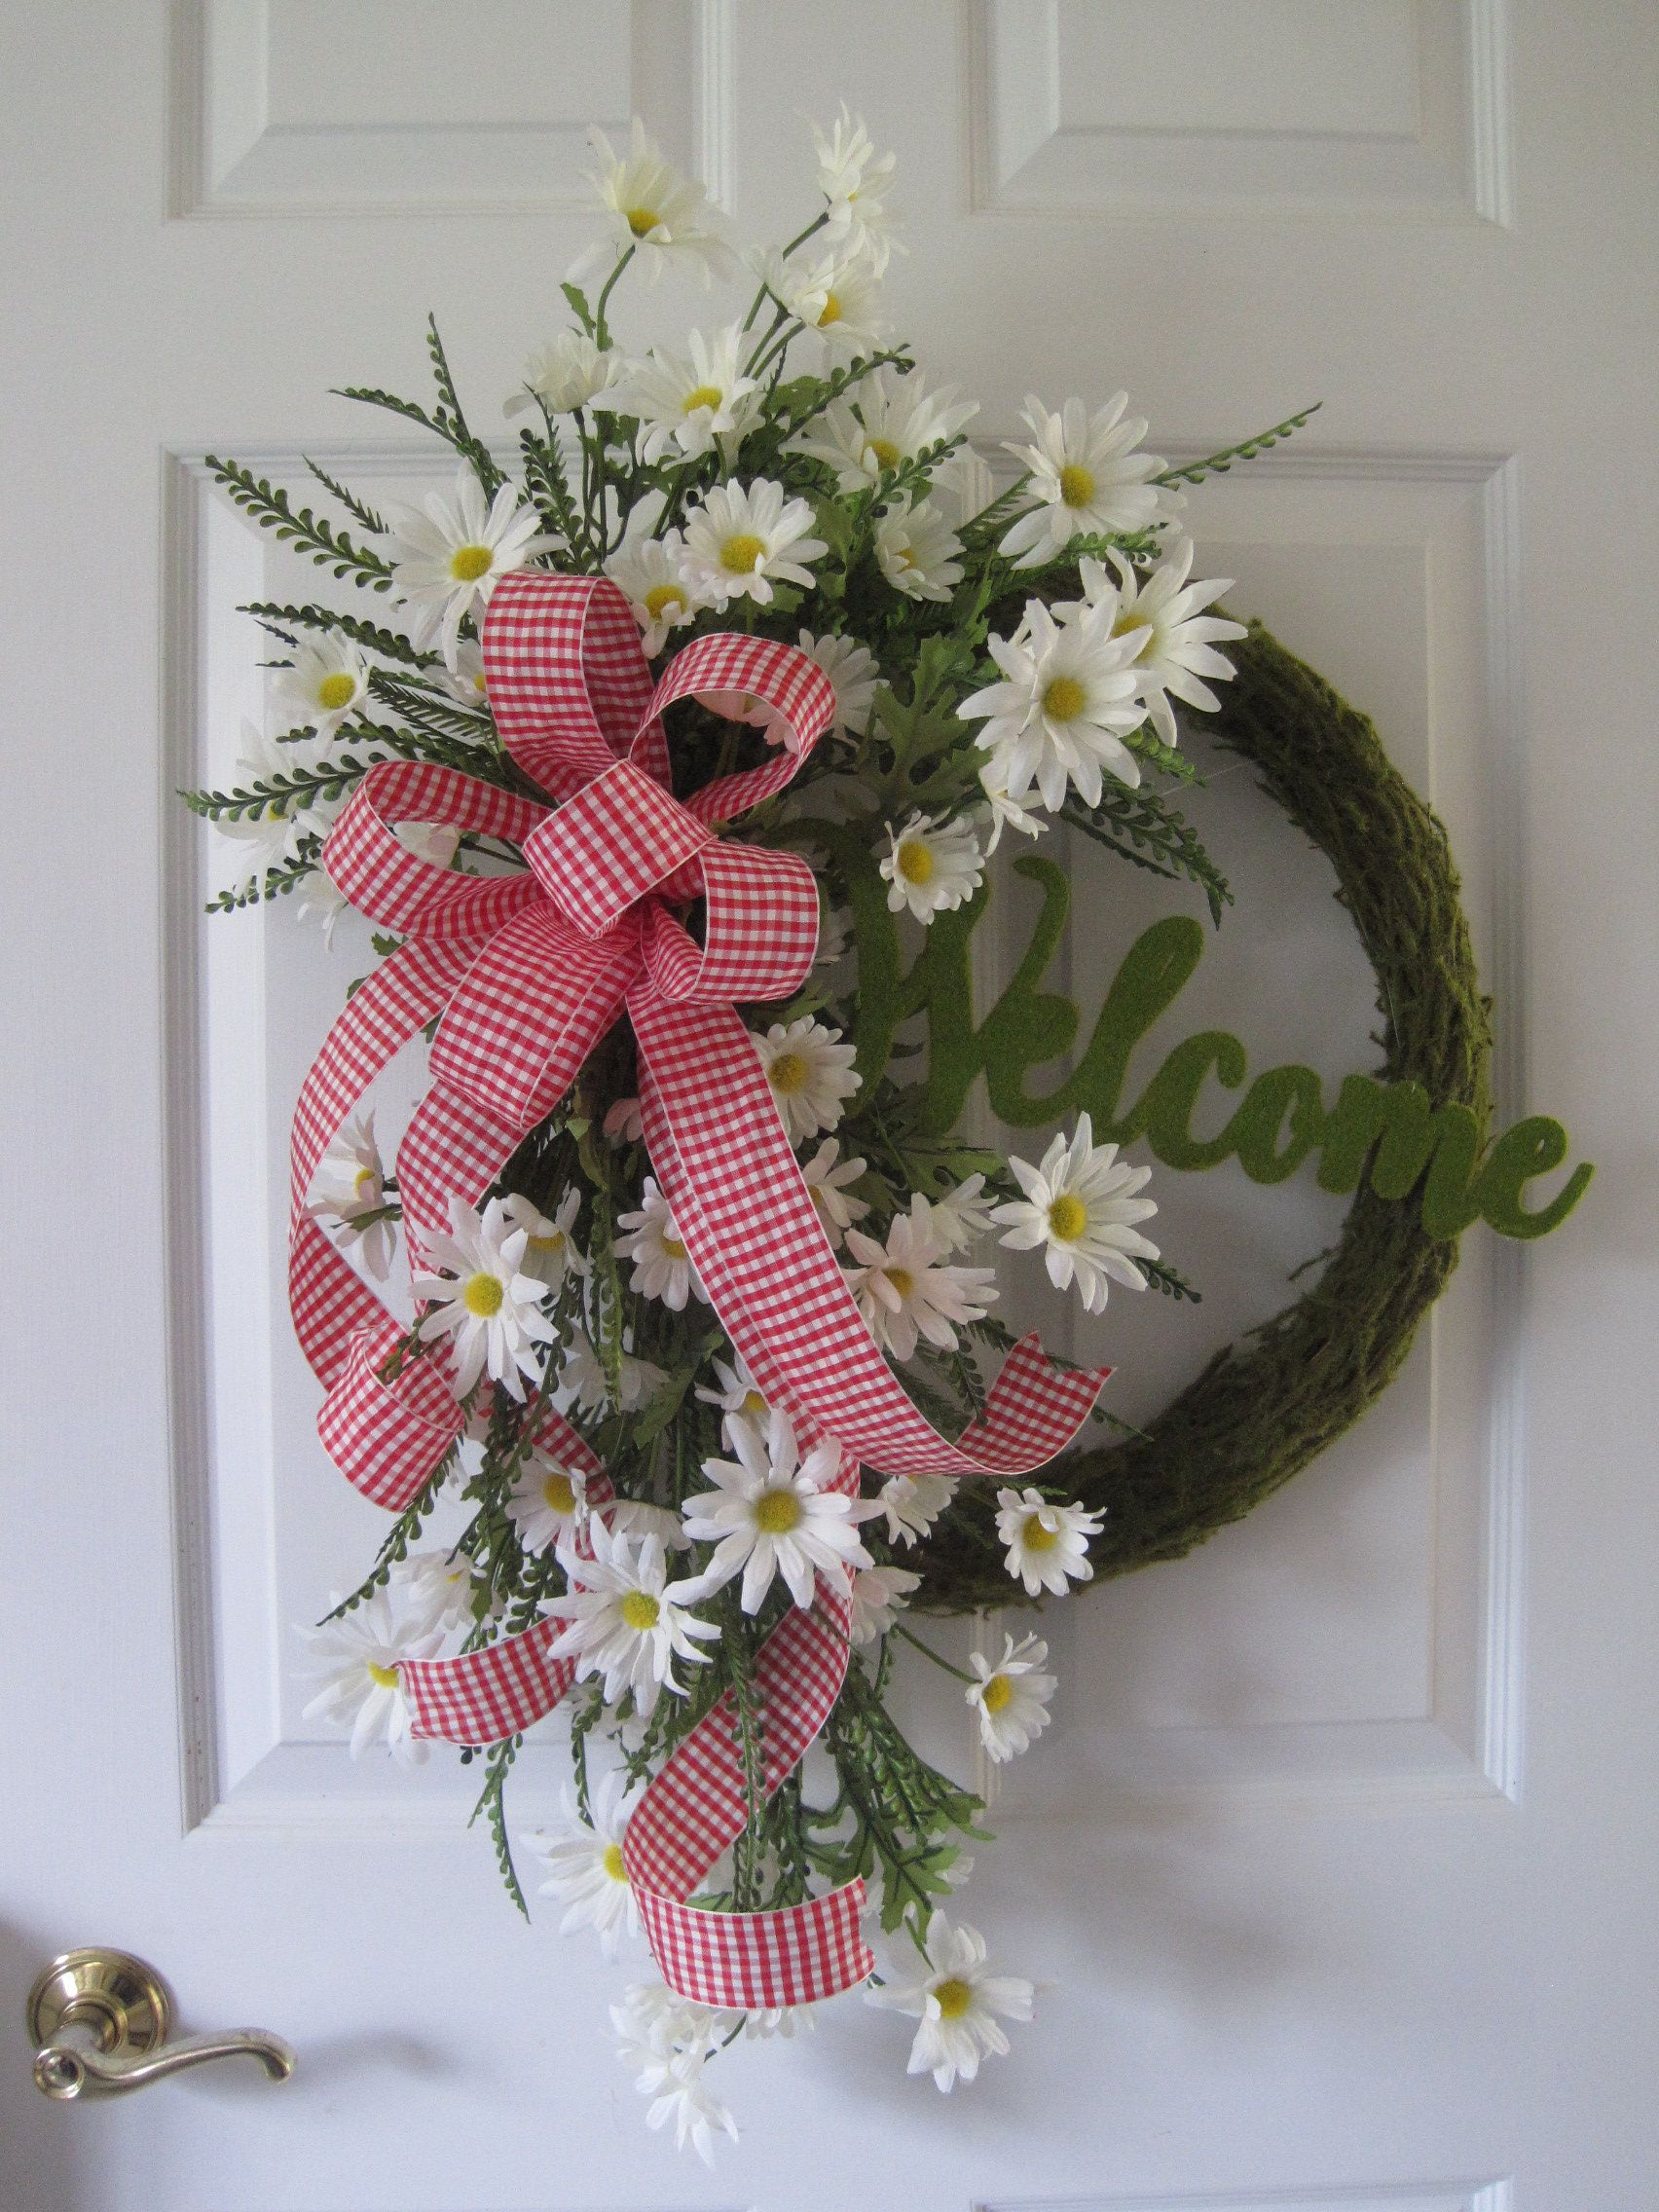 Photo of Mother's Day gift wreath, spring wreath for front door, moss green wreath, daisy welcome wreath, red, white, yellow summer wreath